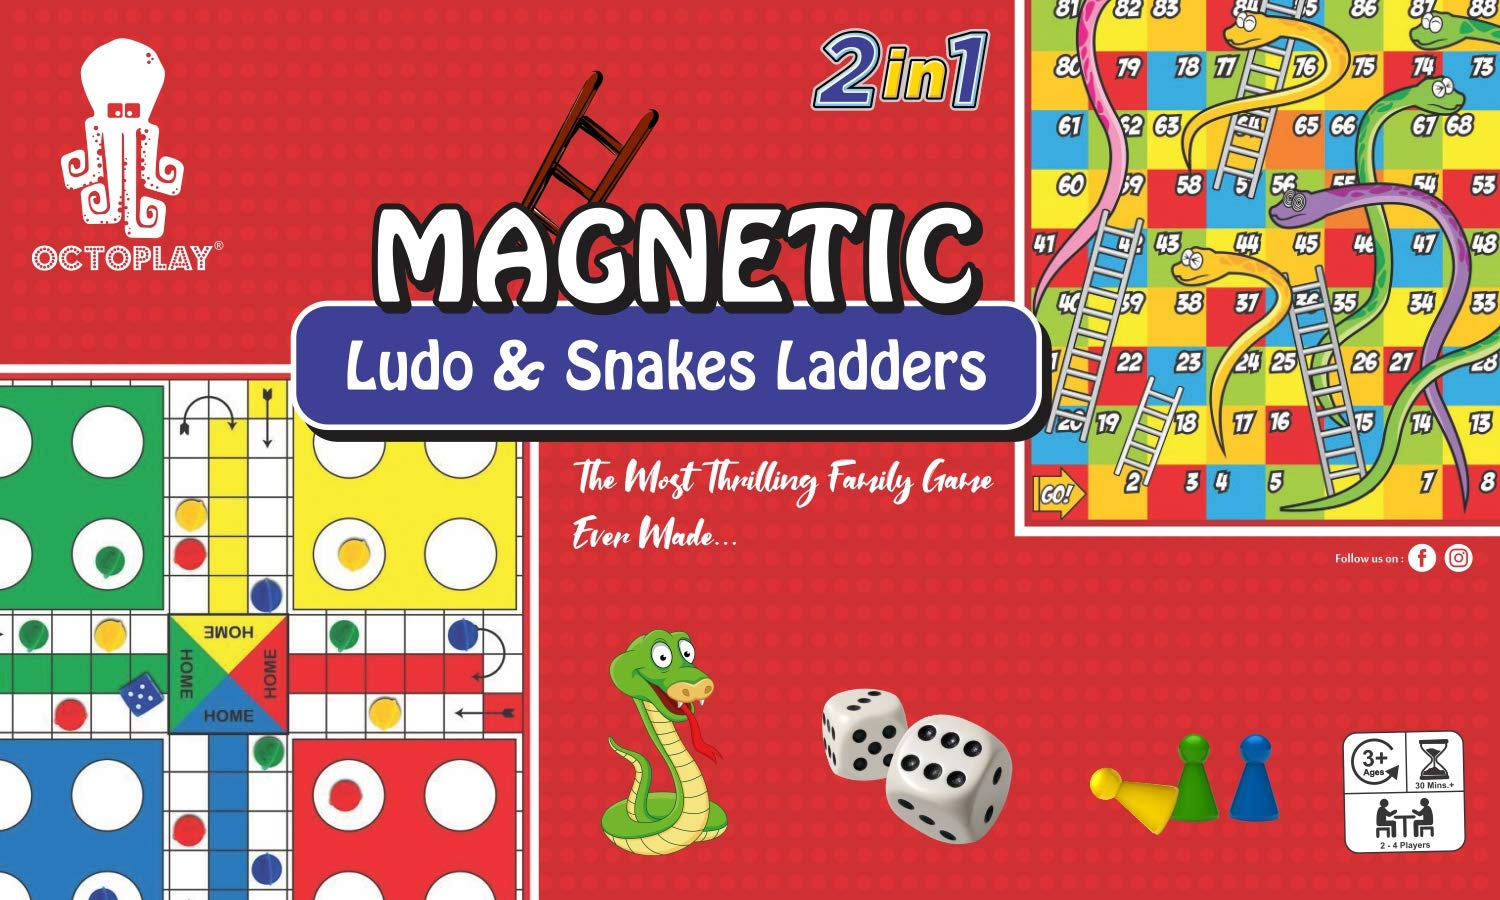 Magnetic Ludo & Snakes and Ladders